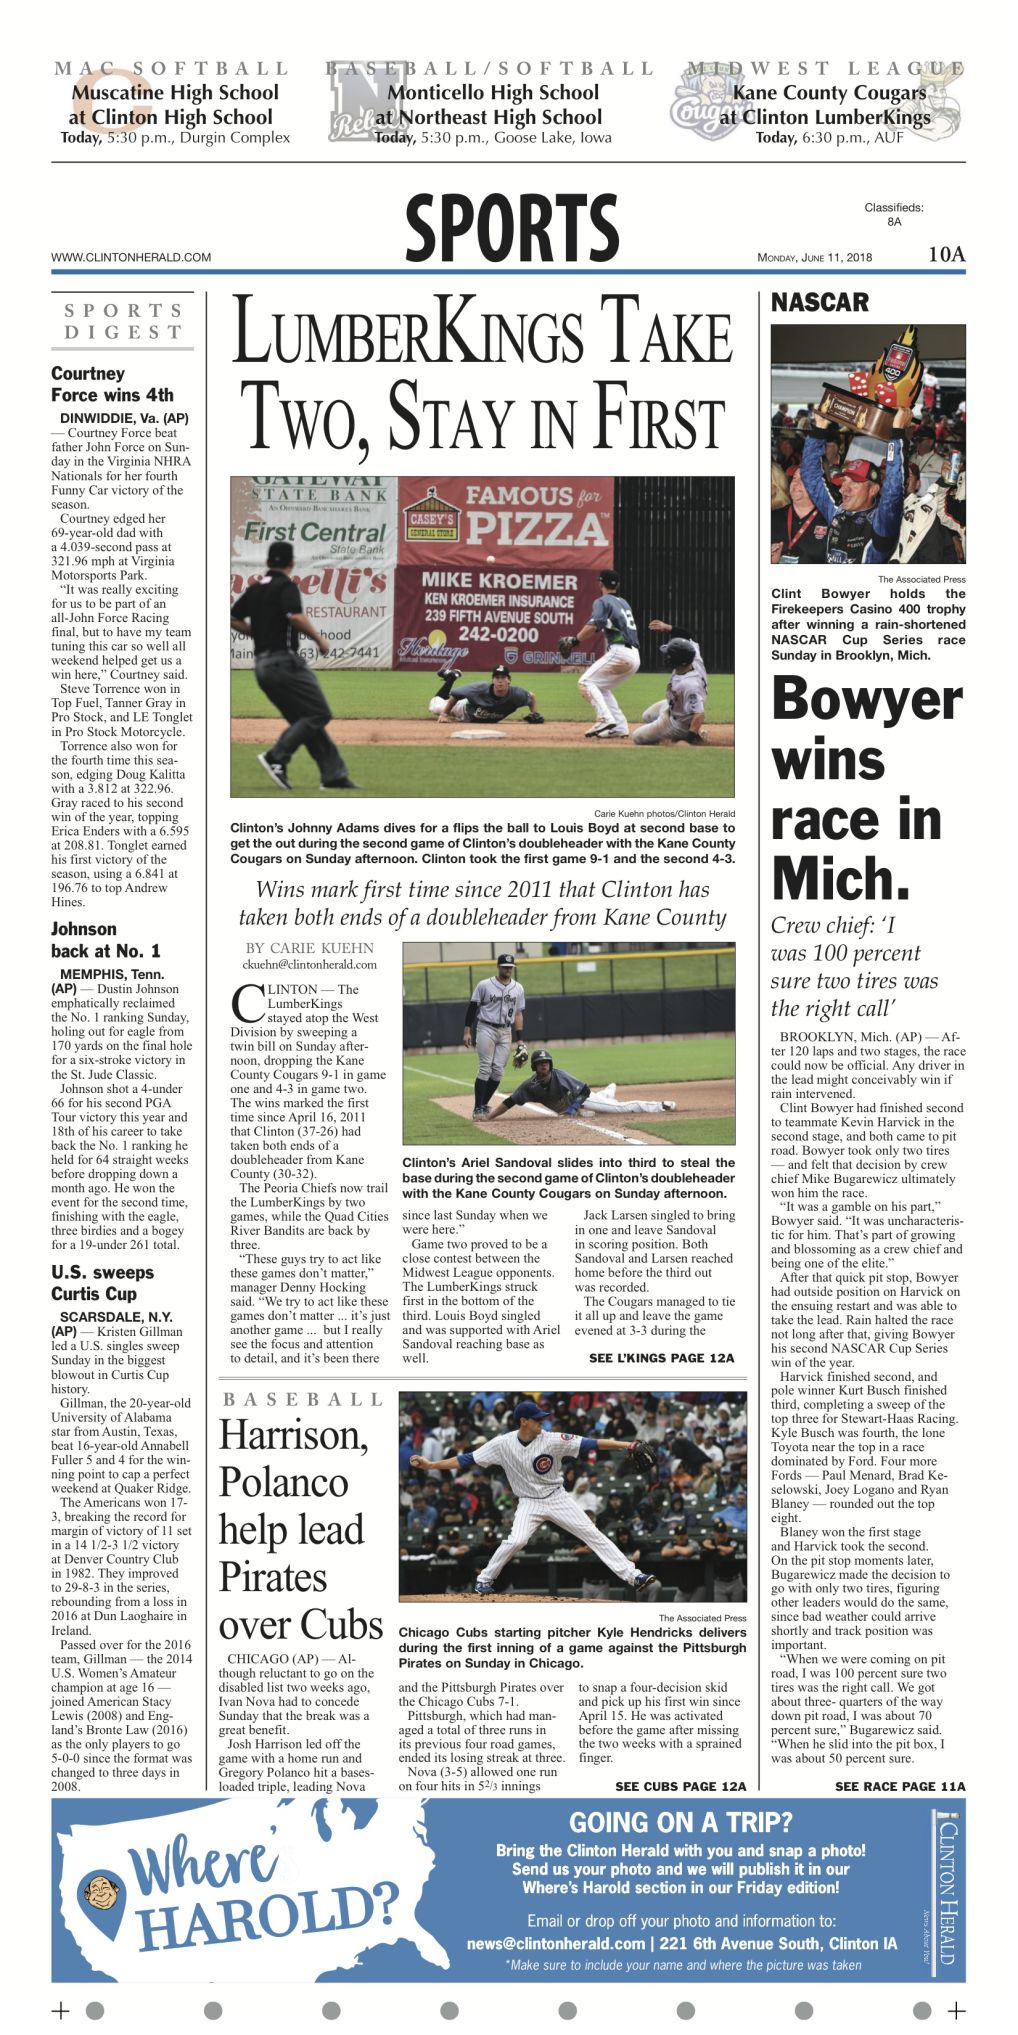 The sports page for June 11, 2018